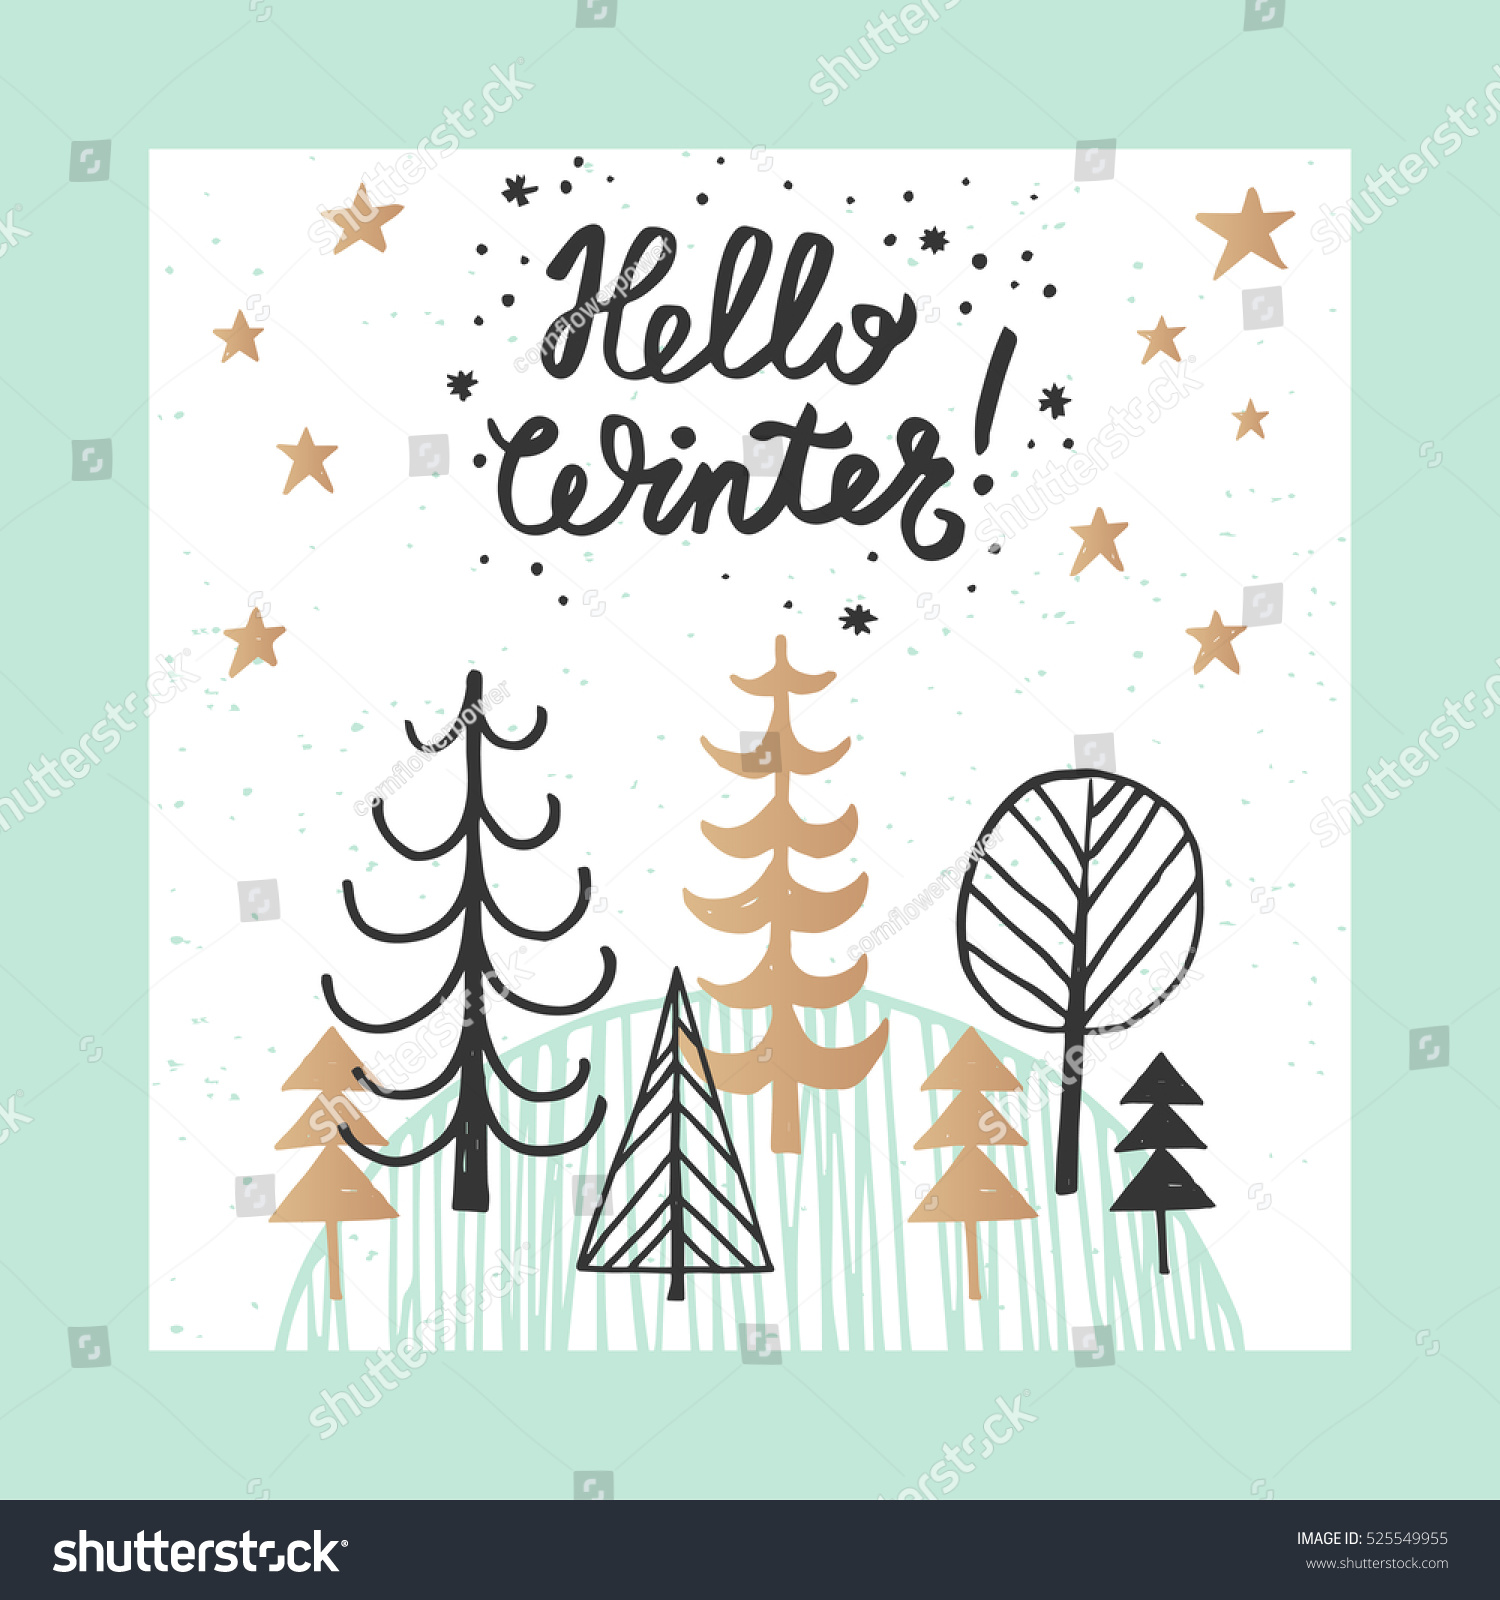 Christmas new year design greeting card stock vector royalty free christmas and new year design greeting card hand drawn vector illustration for greeting cards m4hsunfo